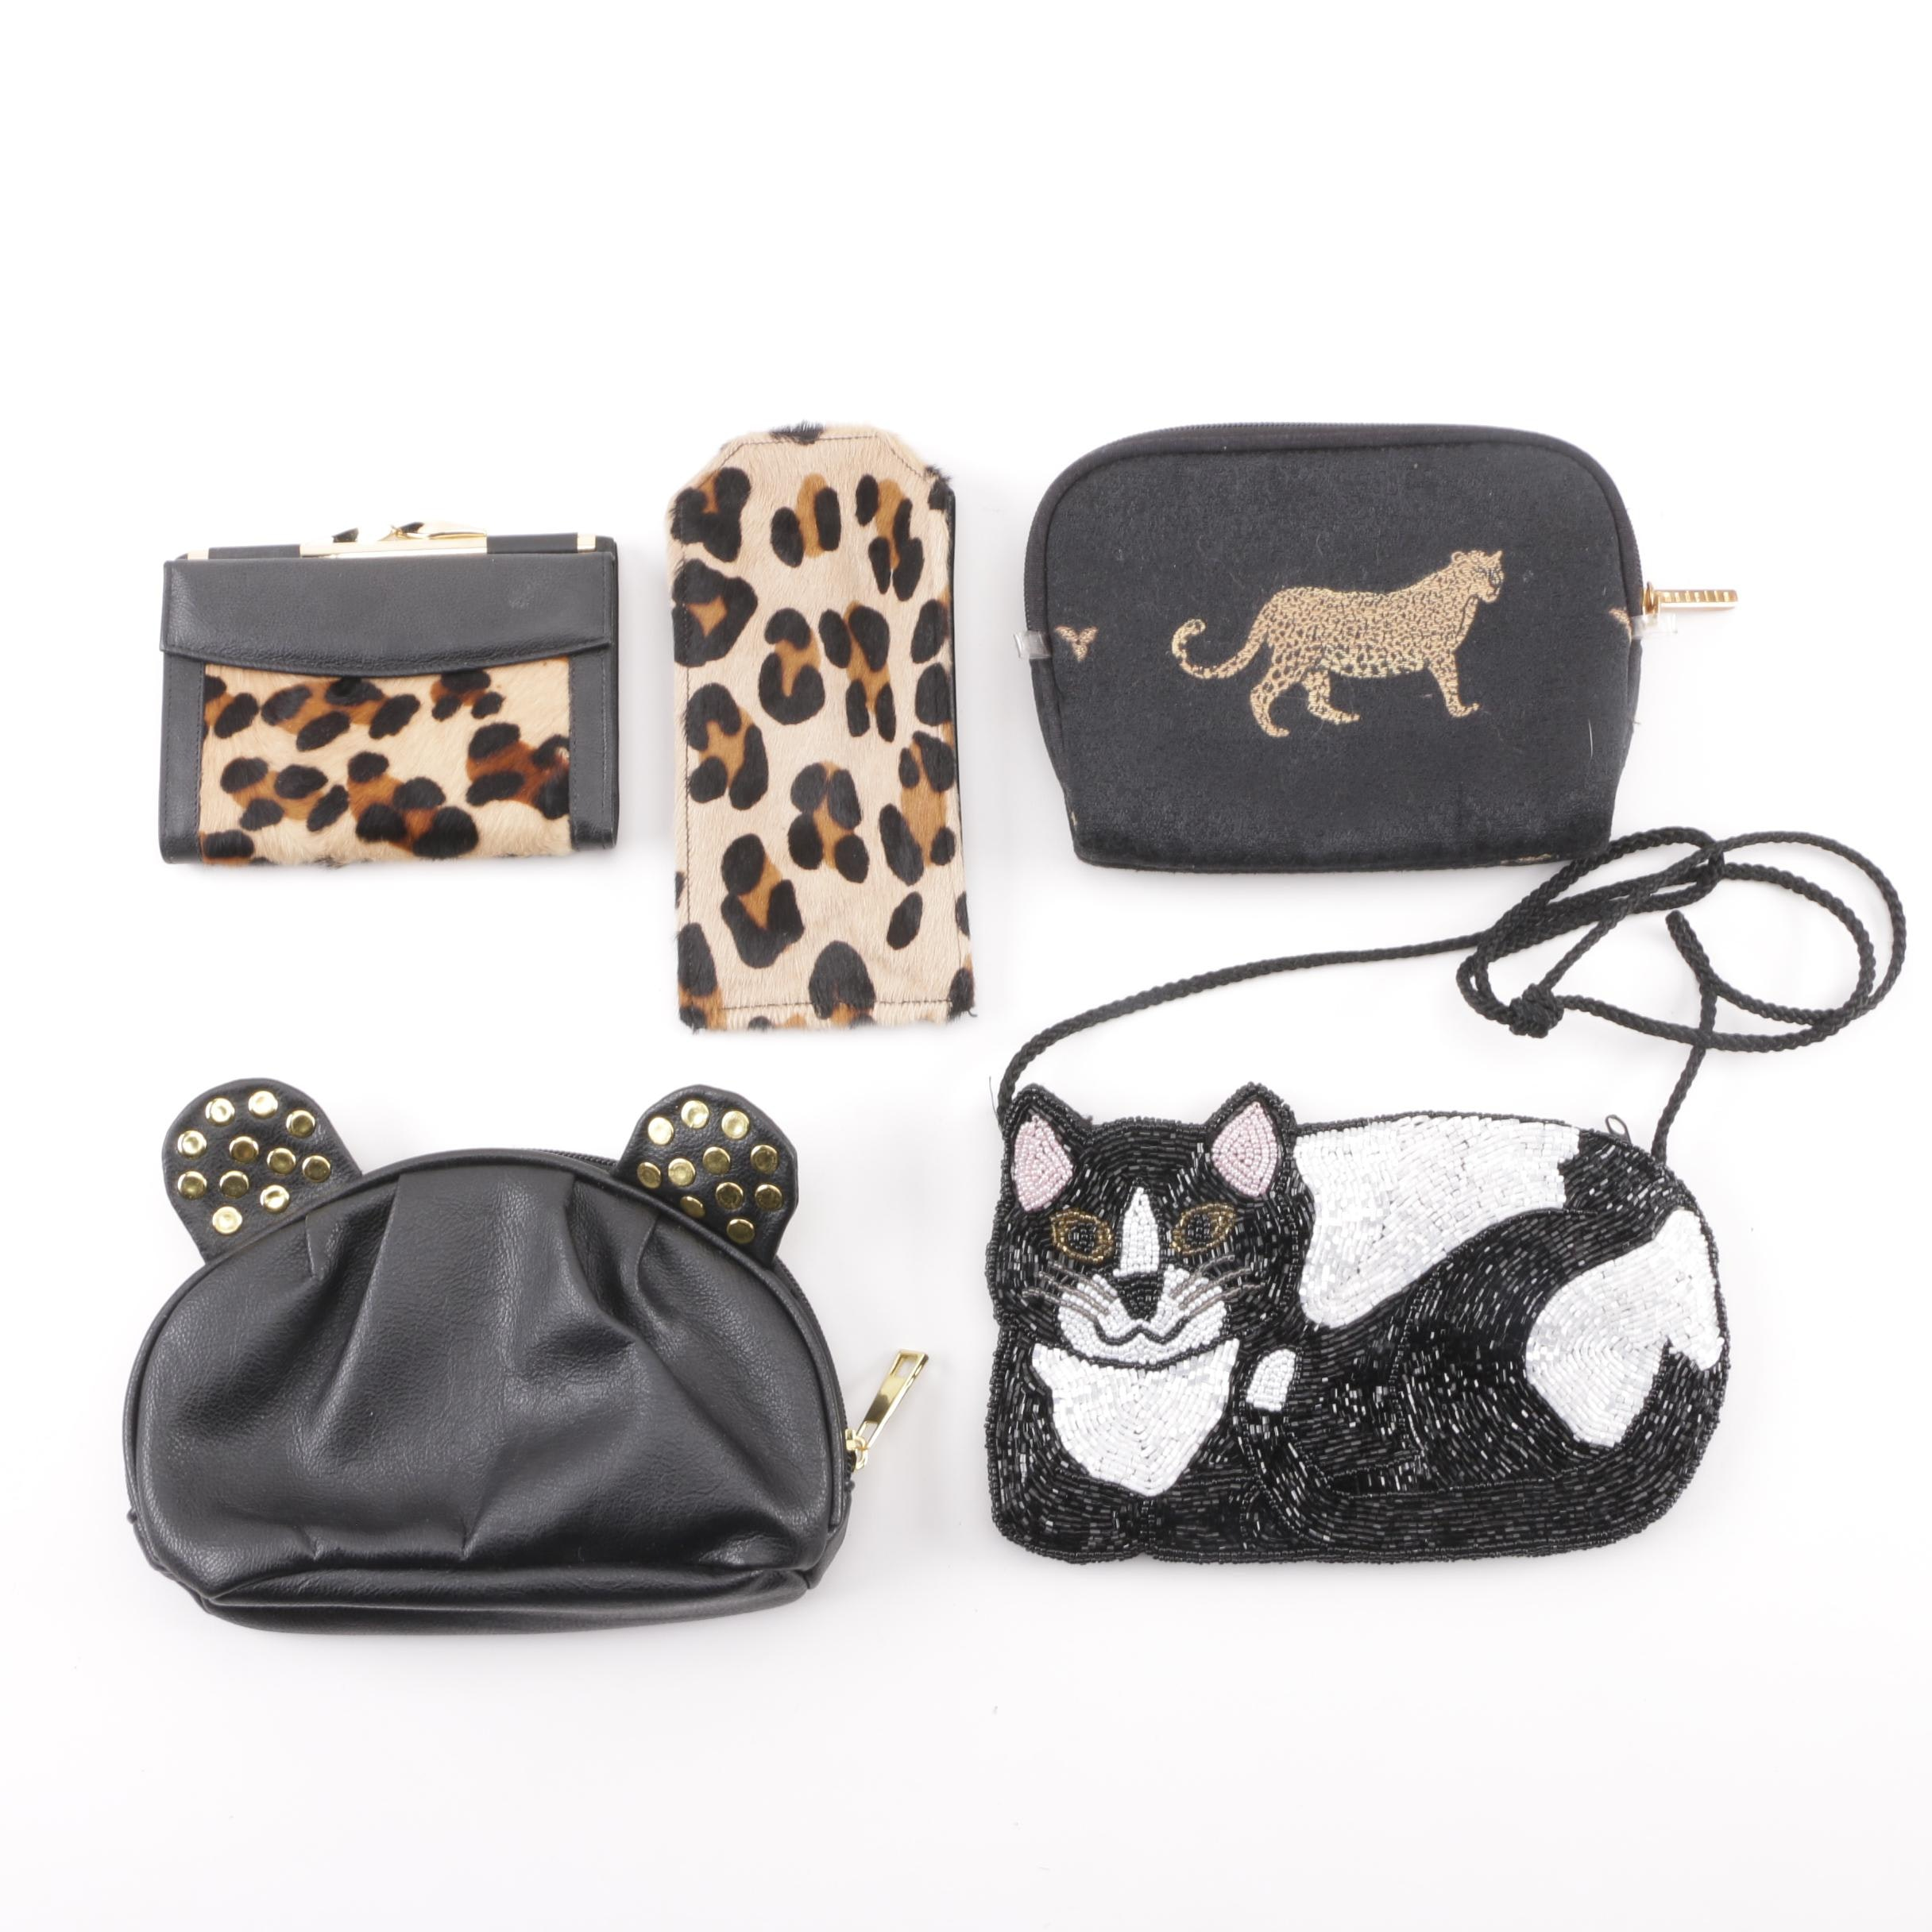 Animal Print and Cat Motif Handbags, Pouches and Wallet